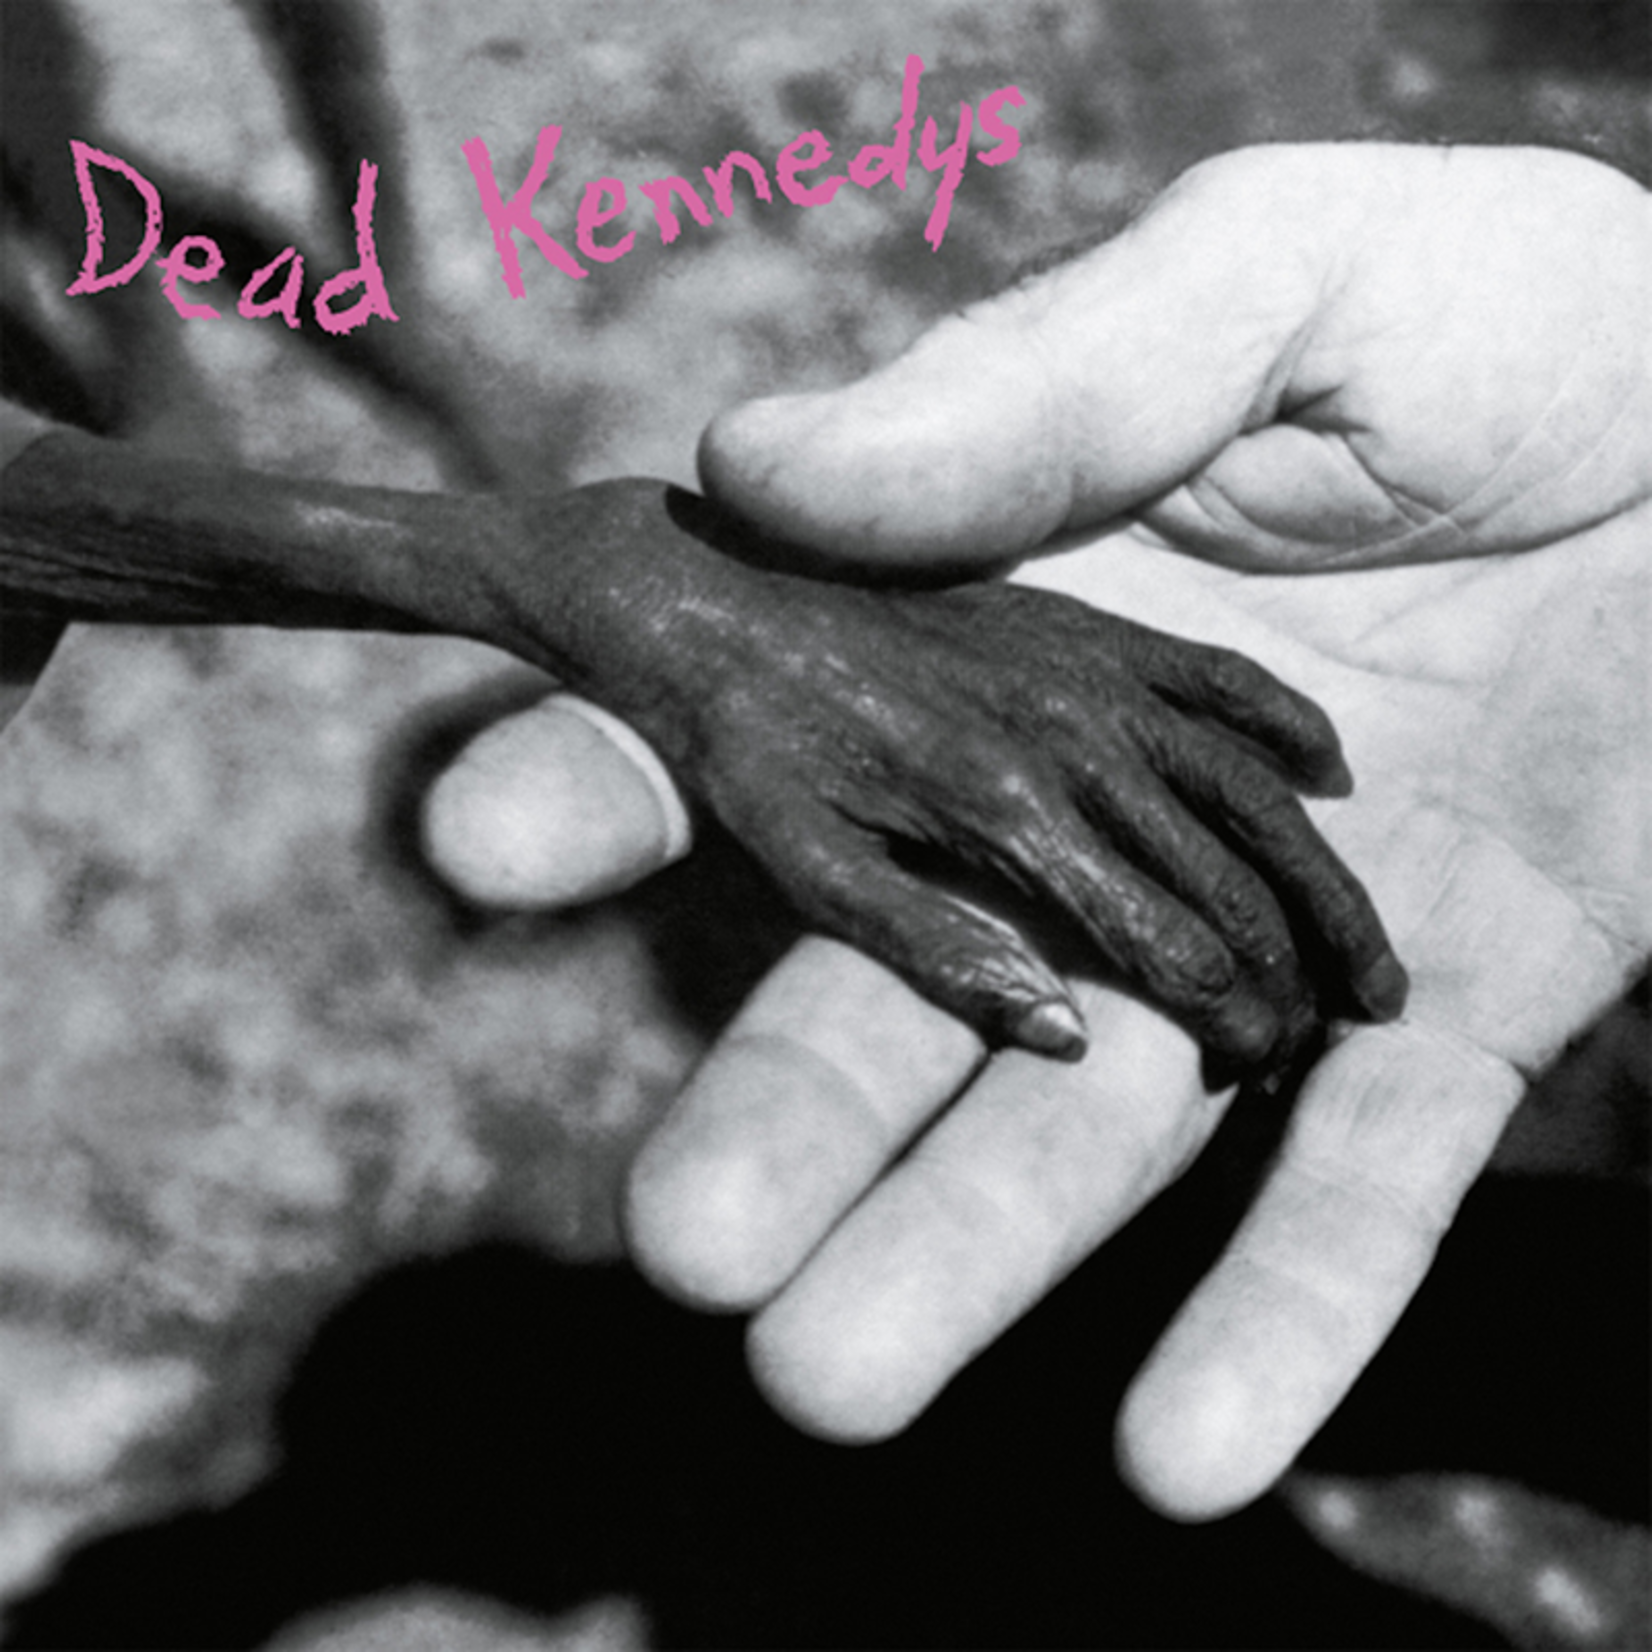 [New] Dead Kennedys: Plastic Surgery Disasters